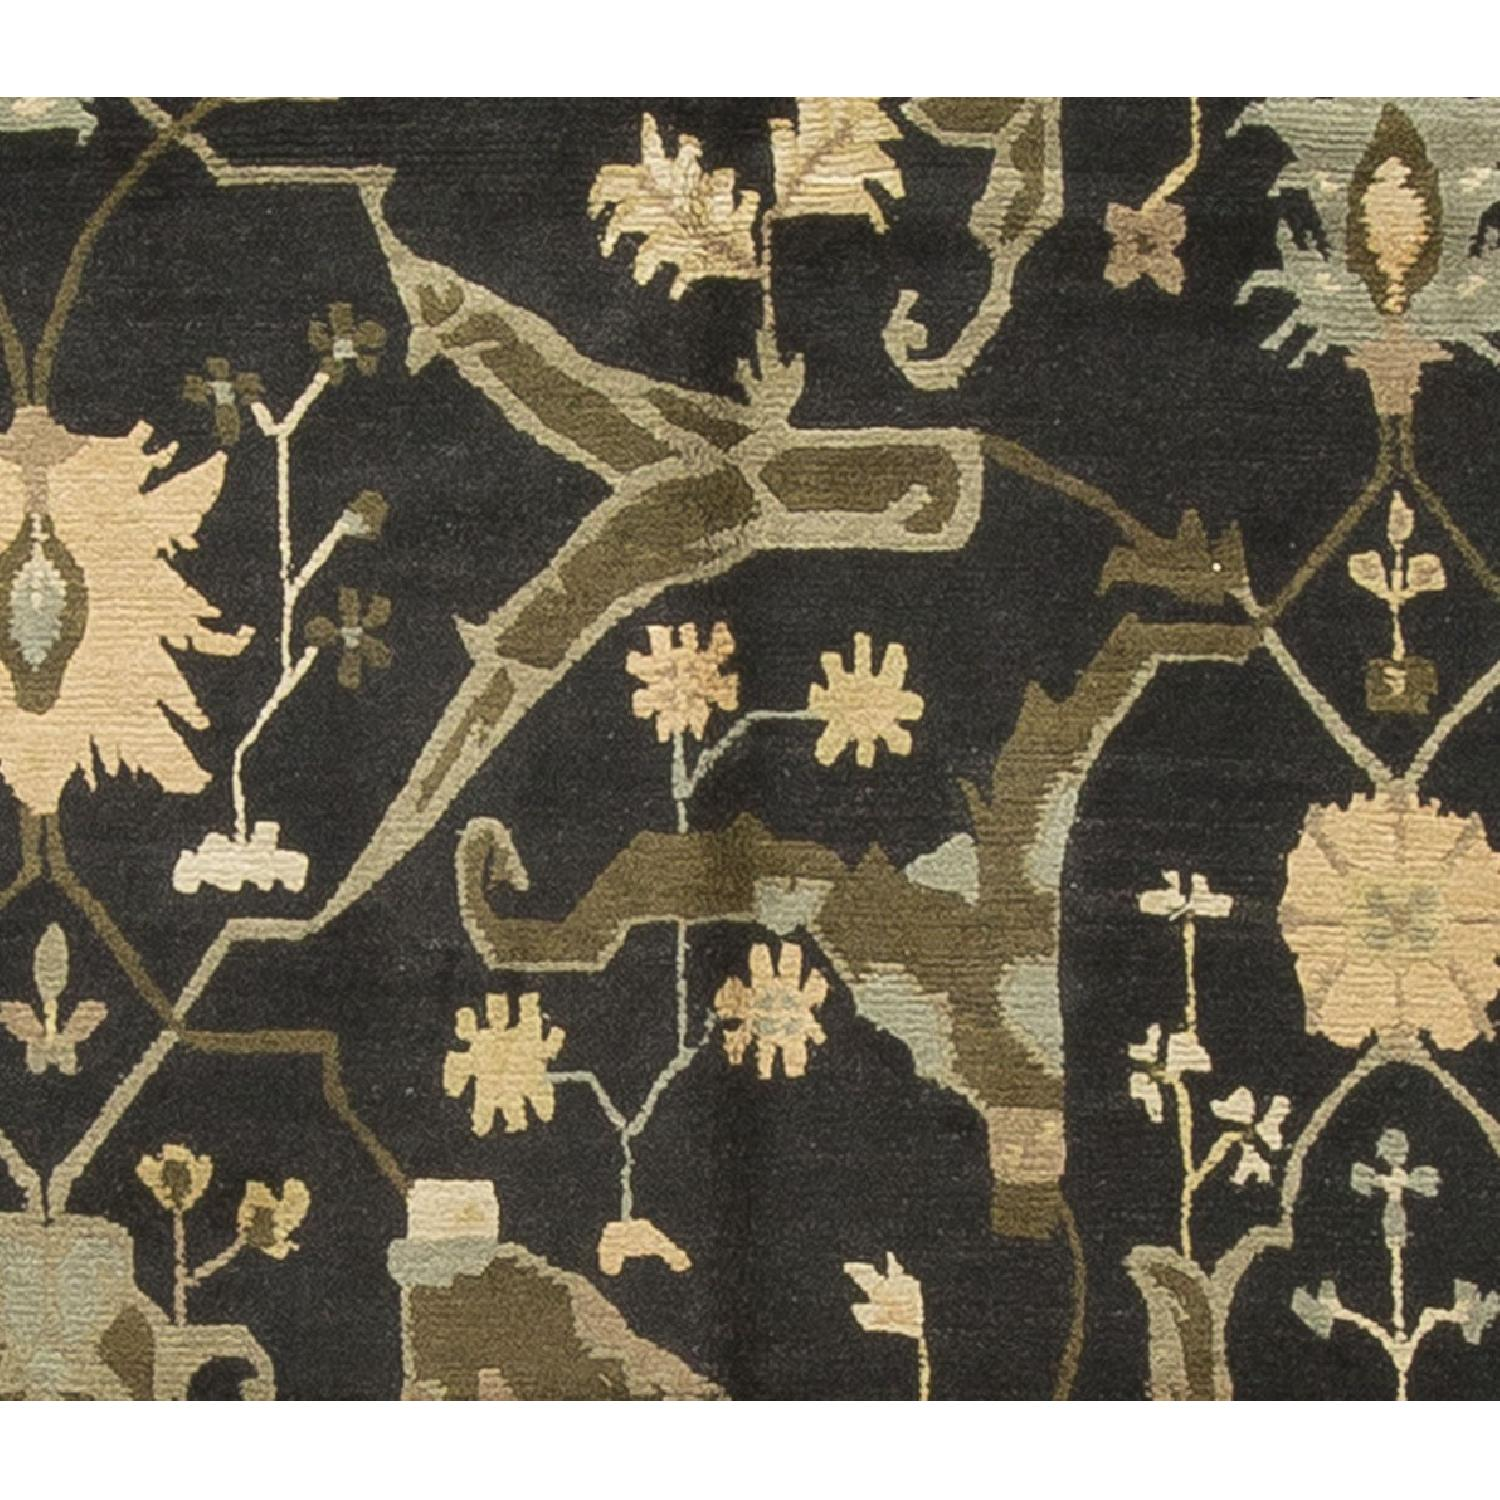 Modern Contemporary Hand Knotted Wool Rug in Black/Beige/Green - image-1